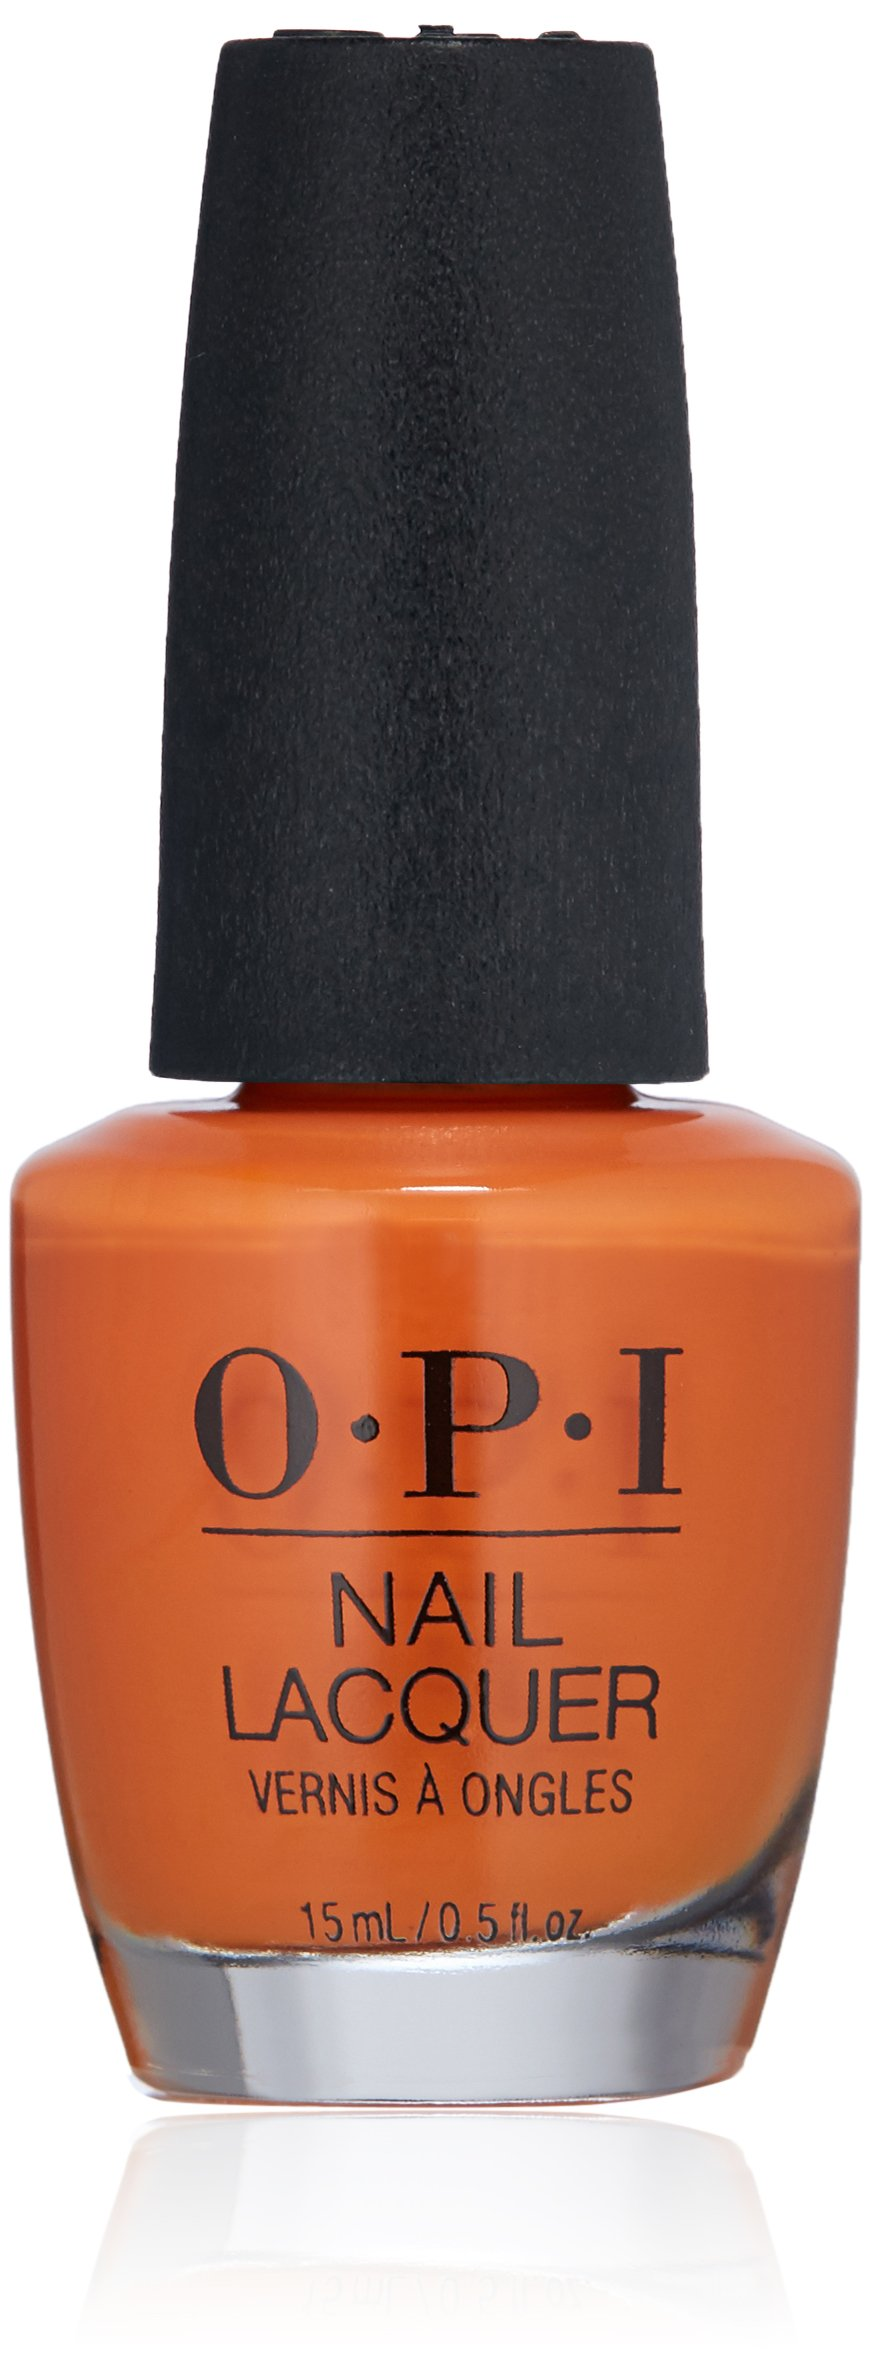 OPI Nail Lacquer, Summer Lovin Having a Blast by OPI